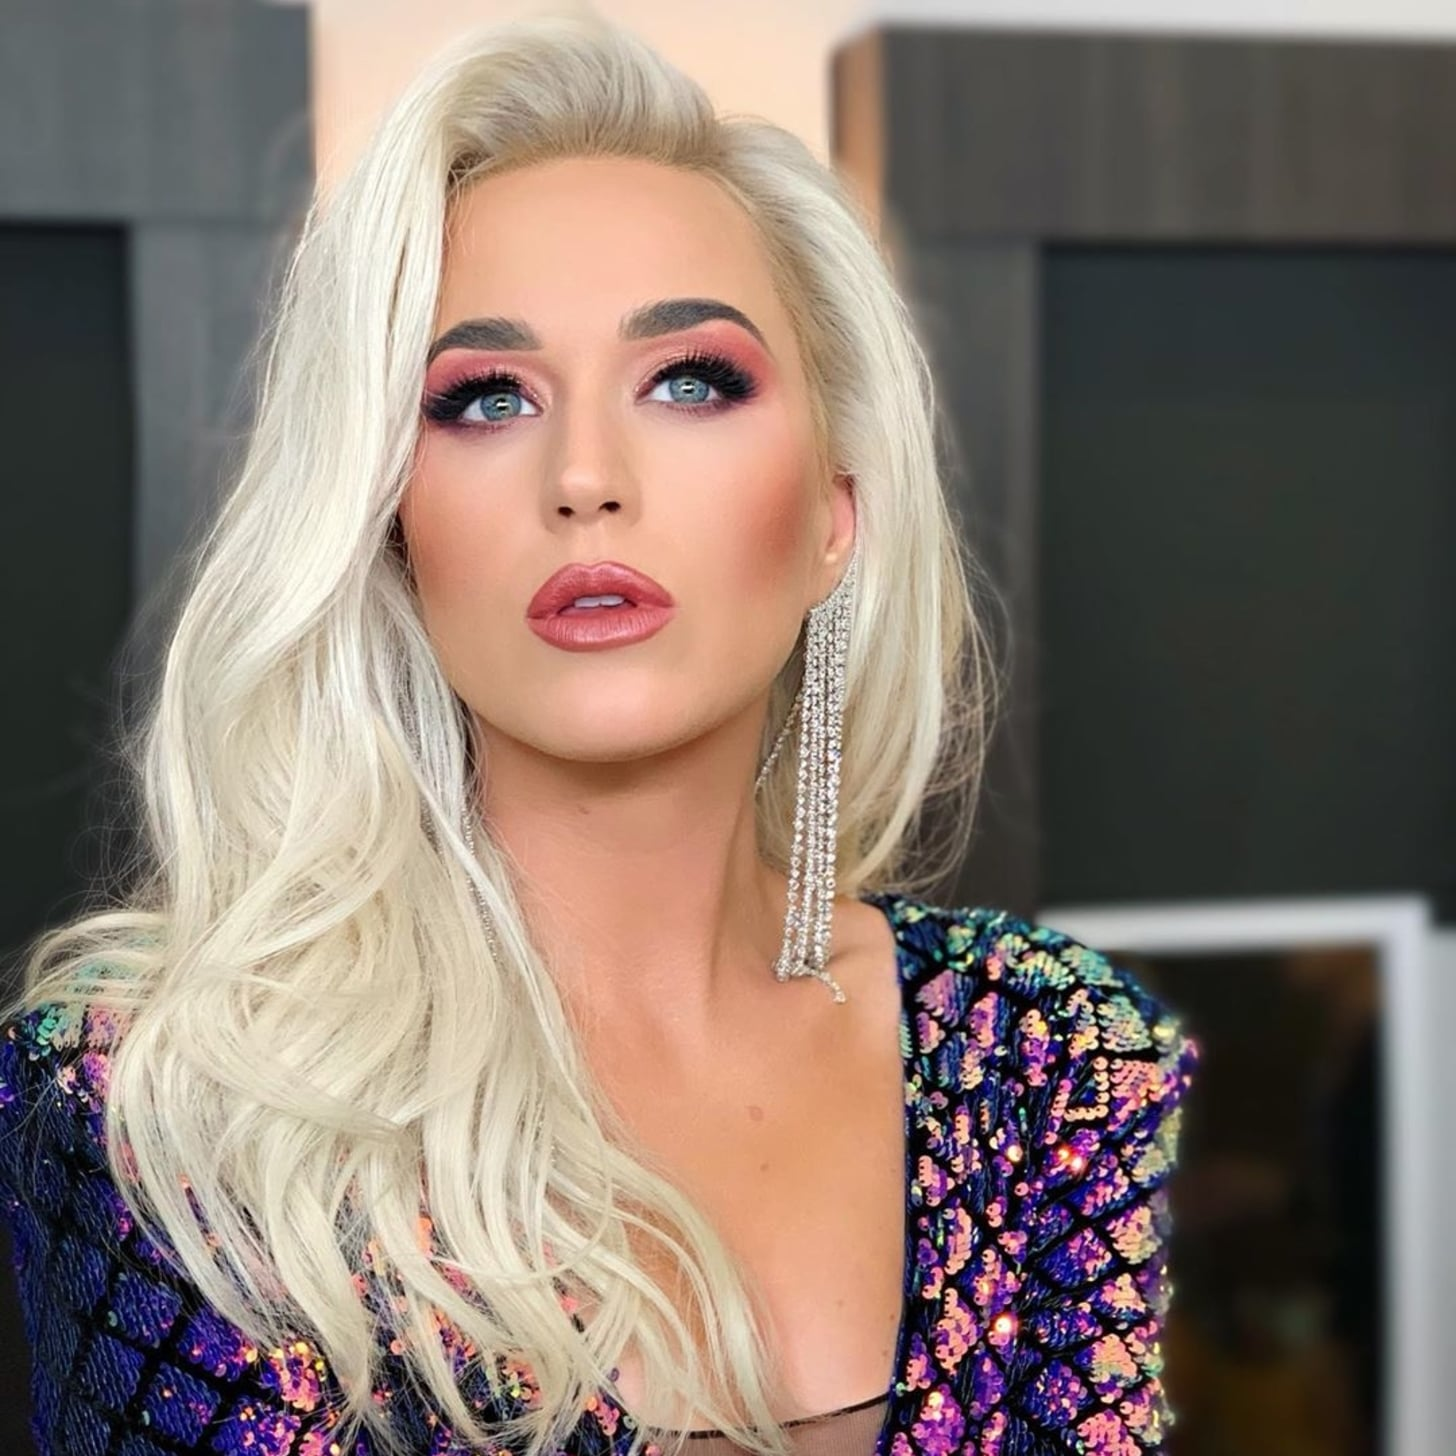 Katy Perry With Shoulder Length Platinum Blond Hair May 2019 | POPSUGAR Beauty UK